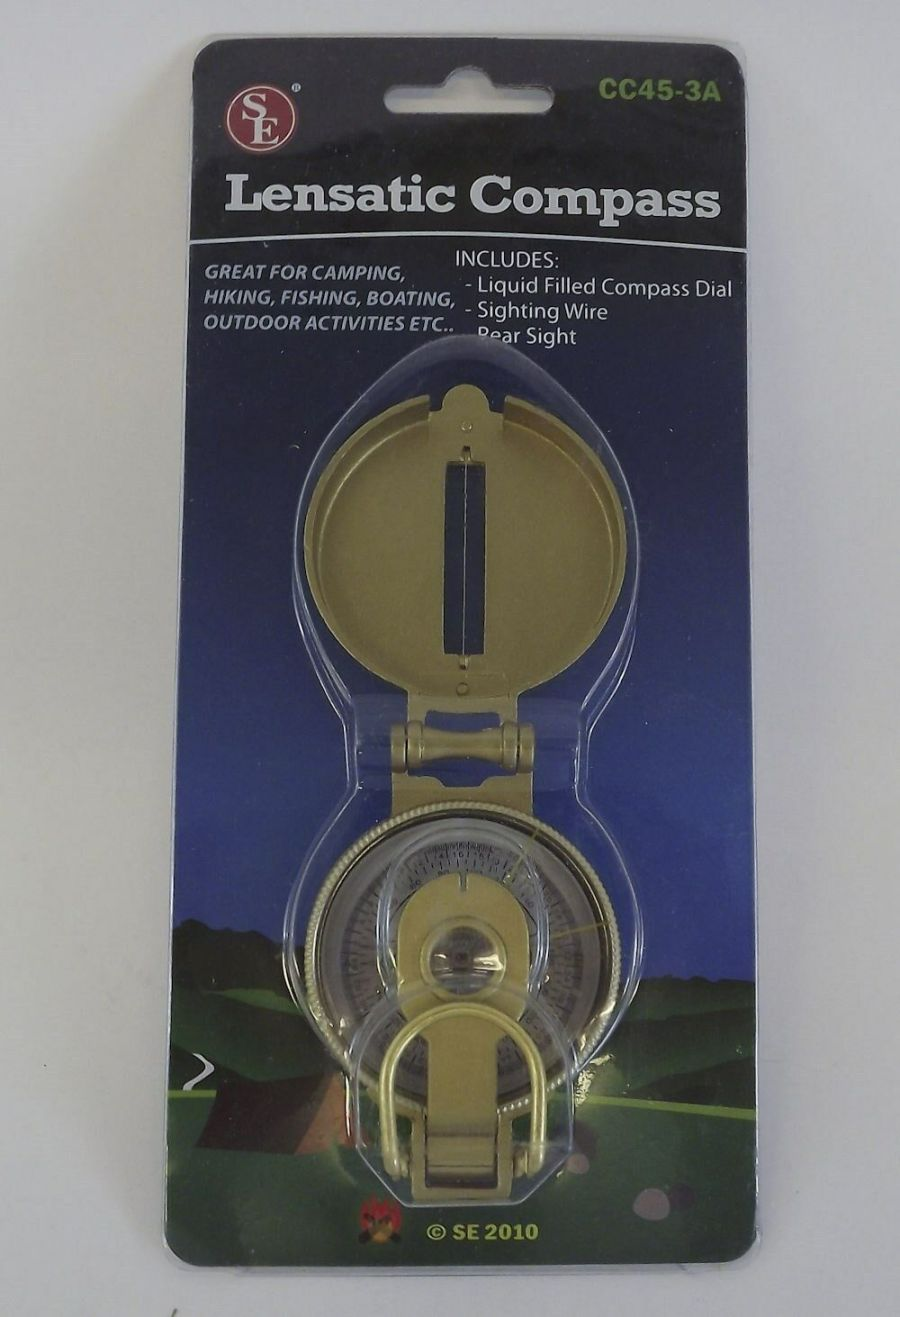 New Lensatic Compass Hiking Camping Survival Compass Liquid Filled 1